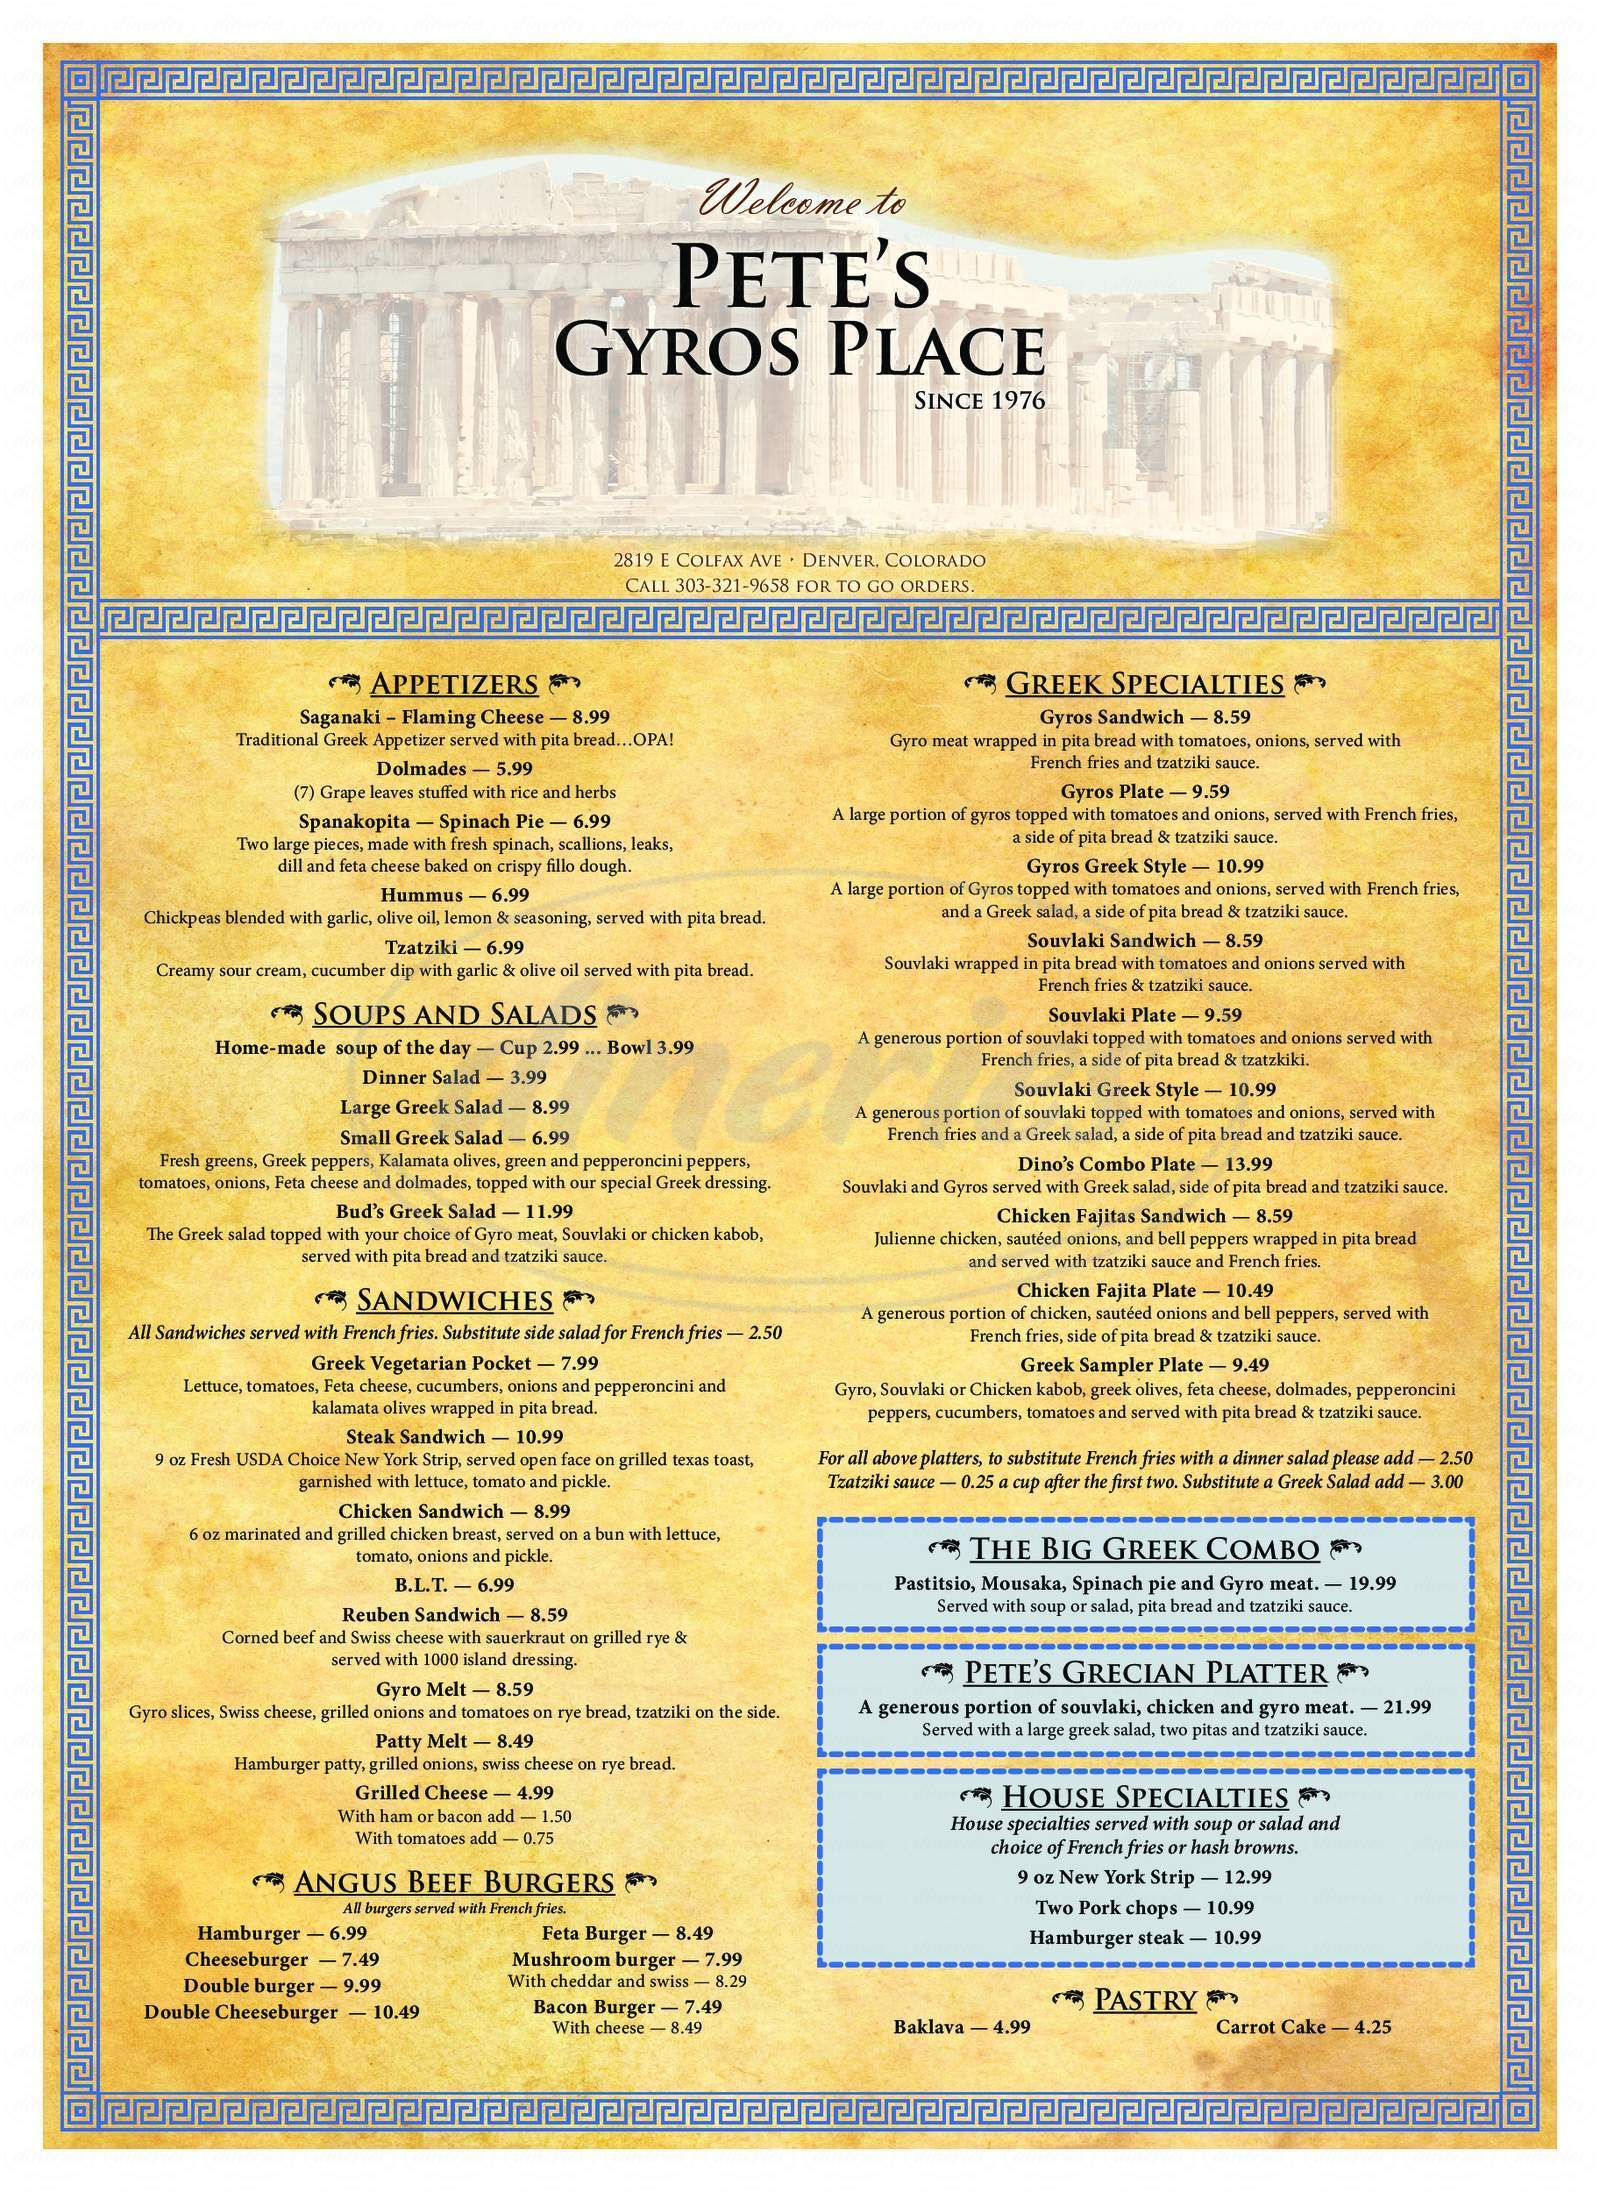 menu for Pete's Gyros Place